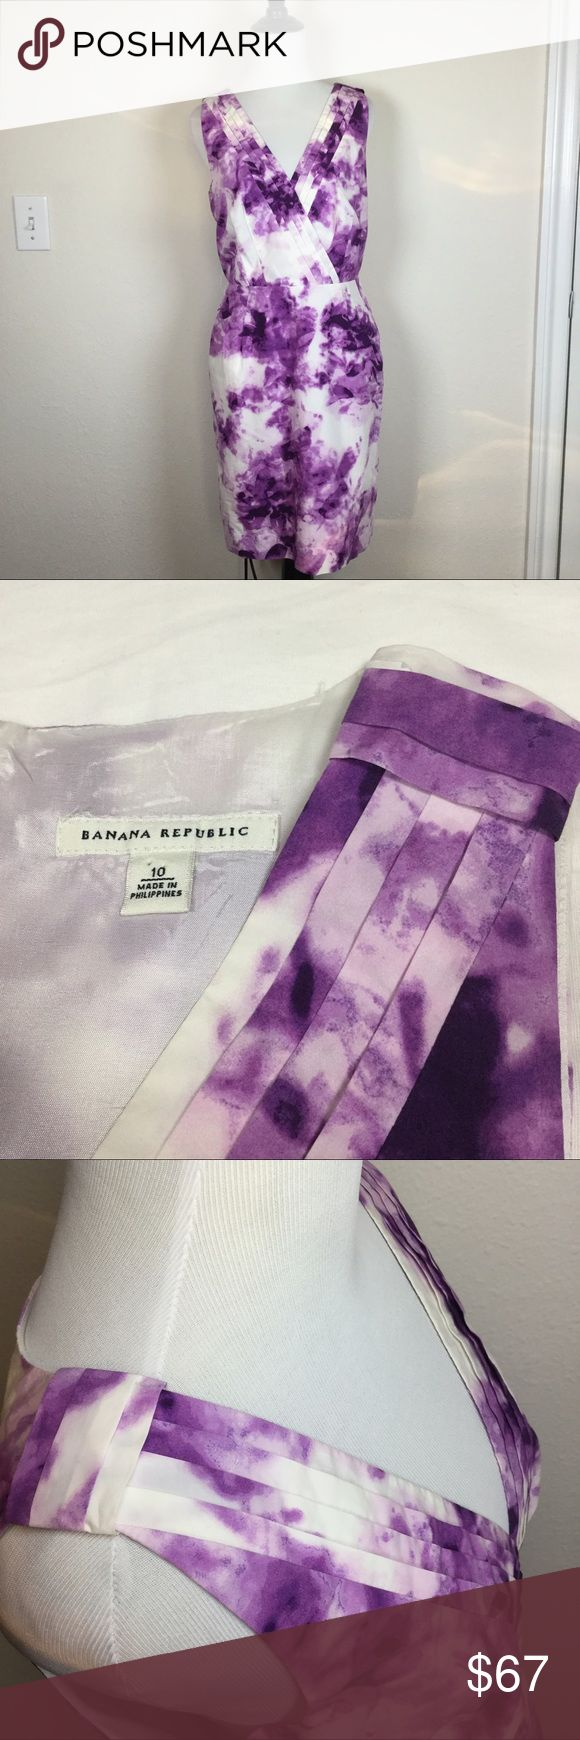 """Banana Republic Summer Dress Size 10 Petite 100% Cotton, very smooth and cool to the touch. V neck, Faux Wrap. Purple, lavender, white watercolor style. When laid flat, 36 inches long. 18 inches across bust from armpit to armpit. Ask any questions. Lined. Back zipper. No trades. Offers welcome through """"offer"""" button. 15% discount on bundles. (A) Banana Republic Dresses"""